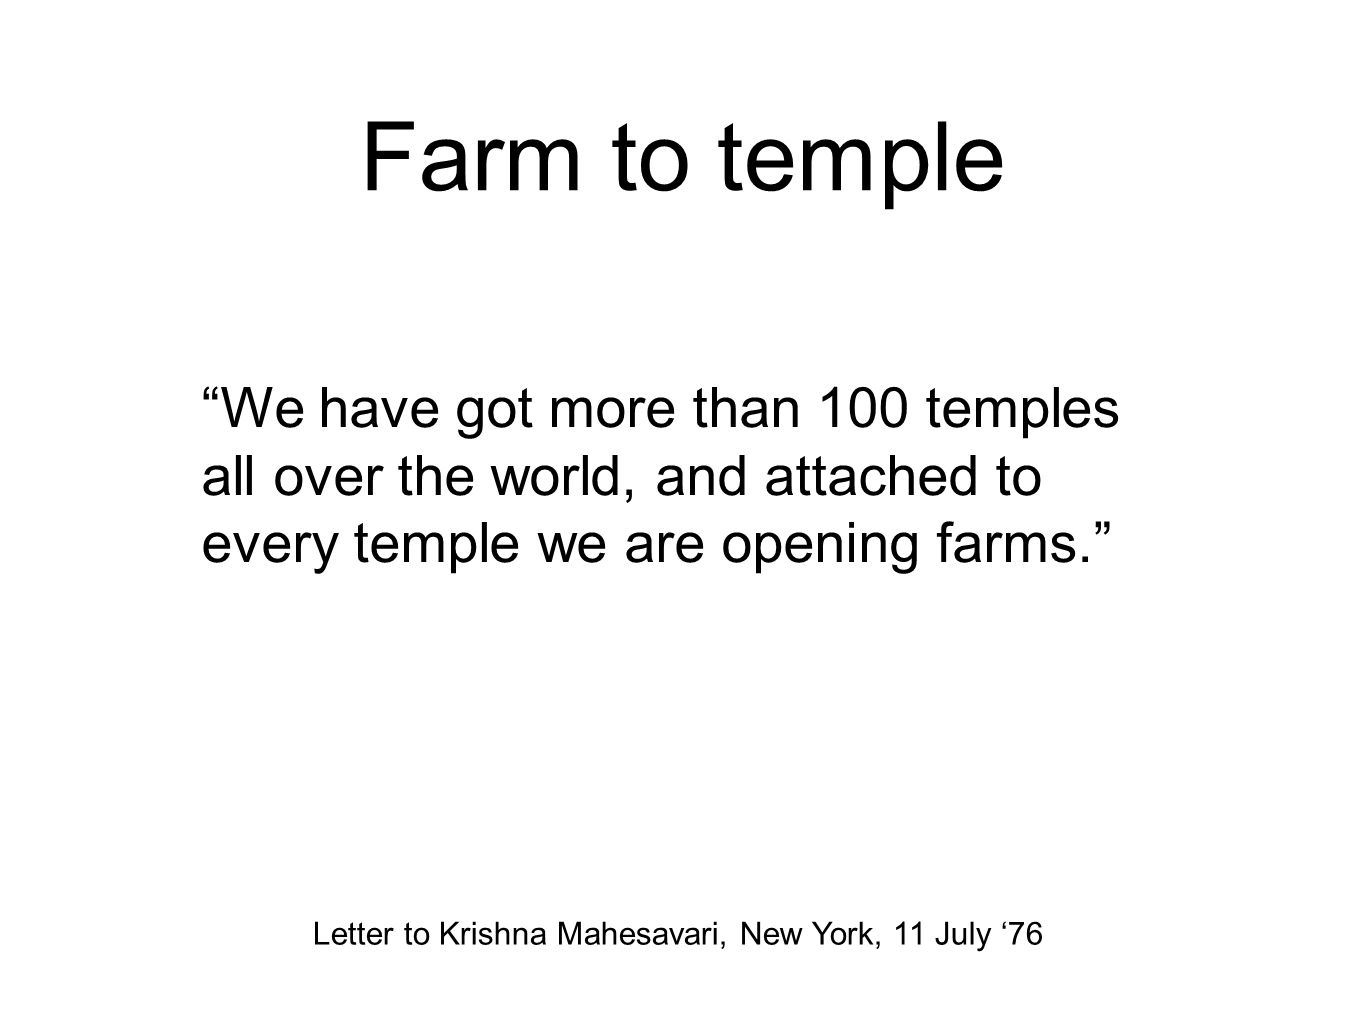 Farm to temple We have got more than 100 temples all over the world, and attached to every temple we are opening farms. Letter to Krishna Mahesavari, New York, 11 July '76